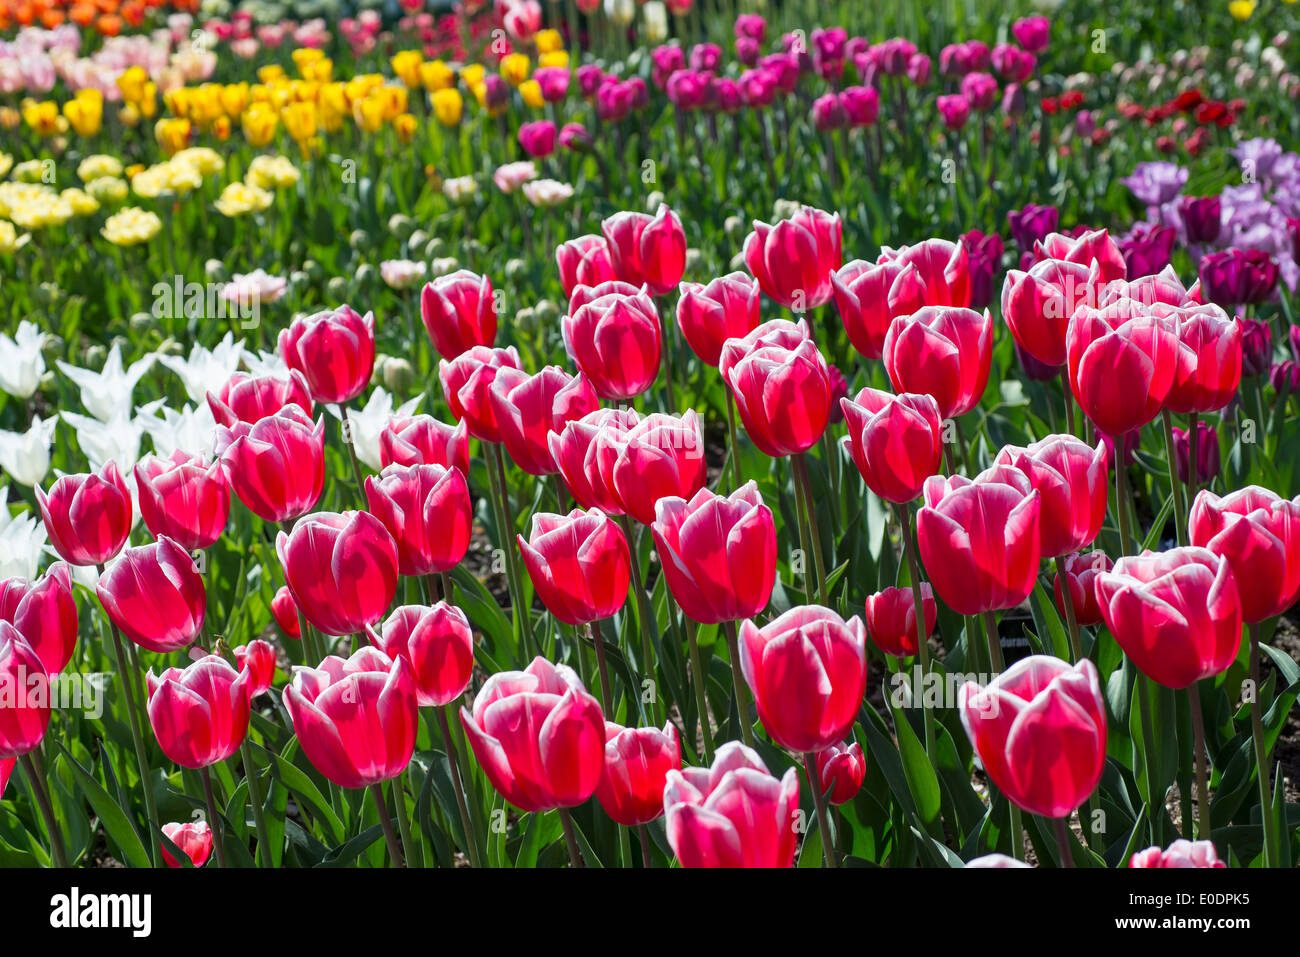 Display of various tulips at RHS Garden, Wisley, Surrey, England, UK - Stock Image